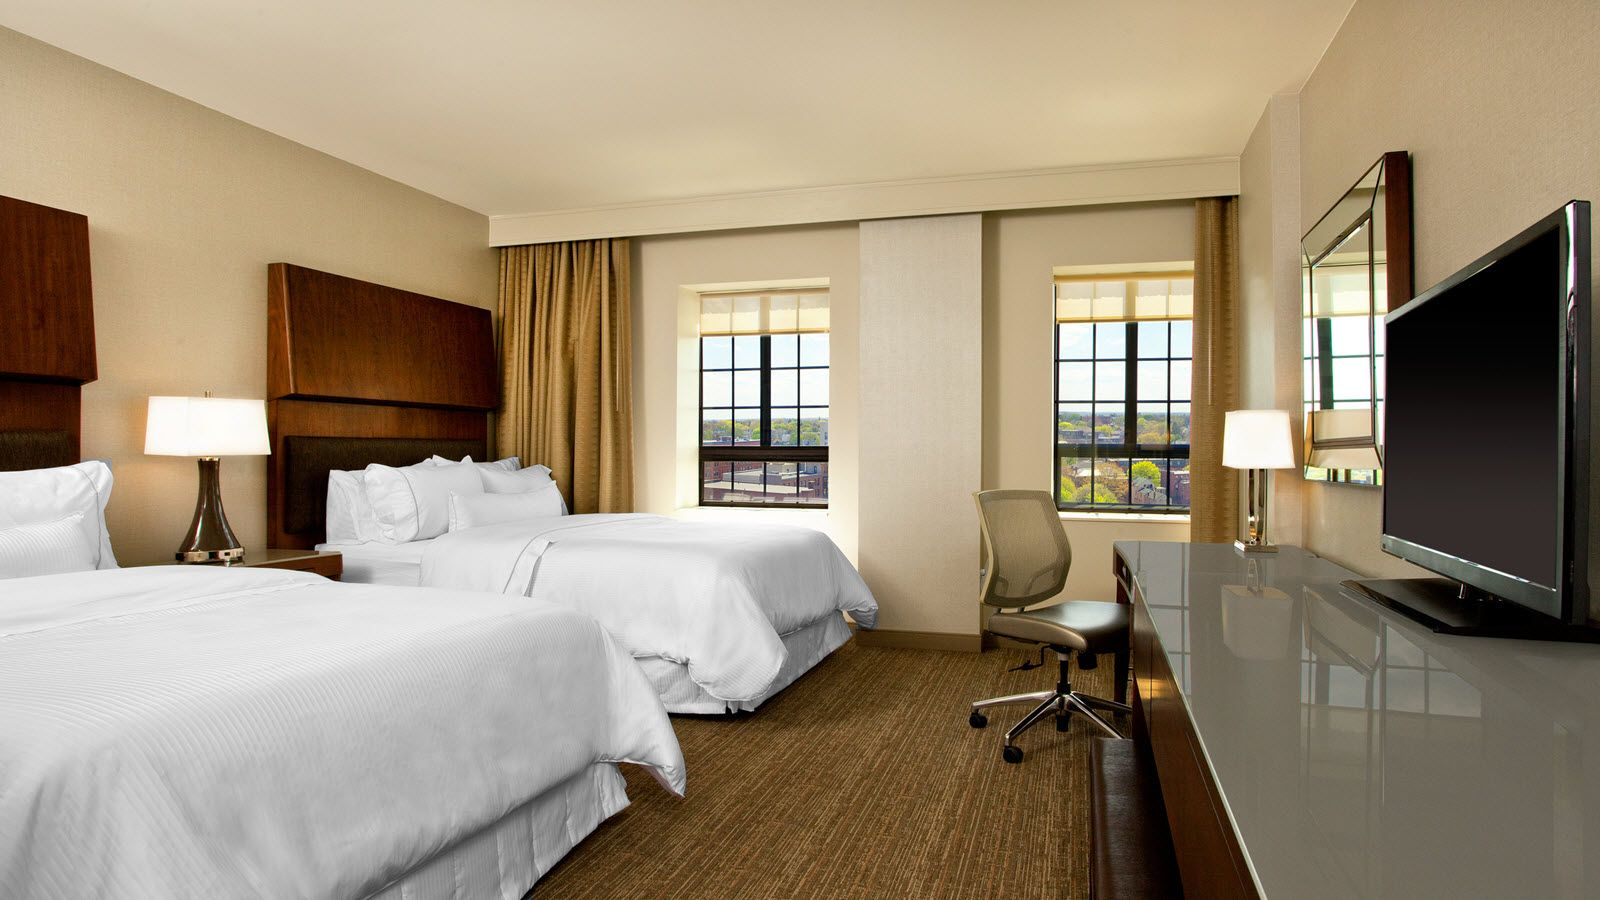 portland maine accommodations | the westin portland harborview